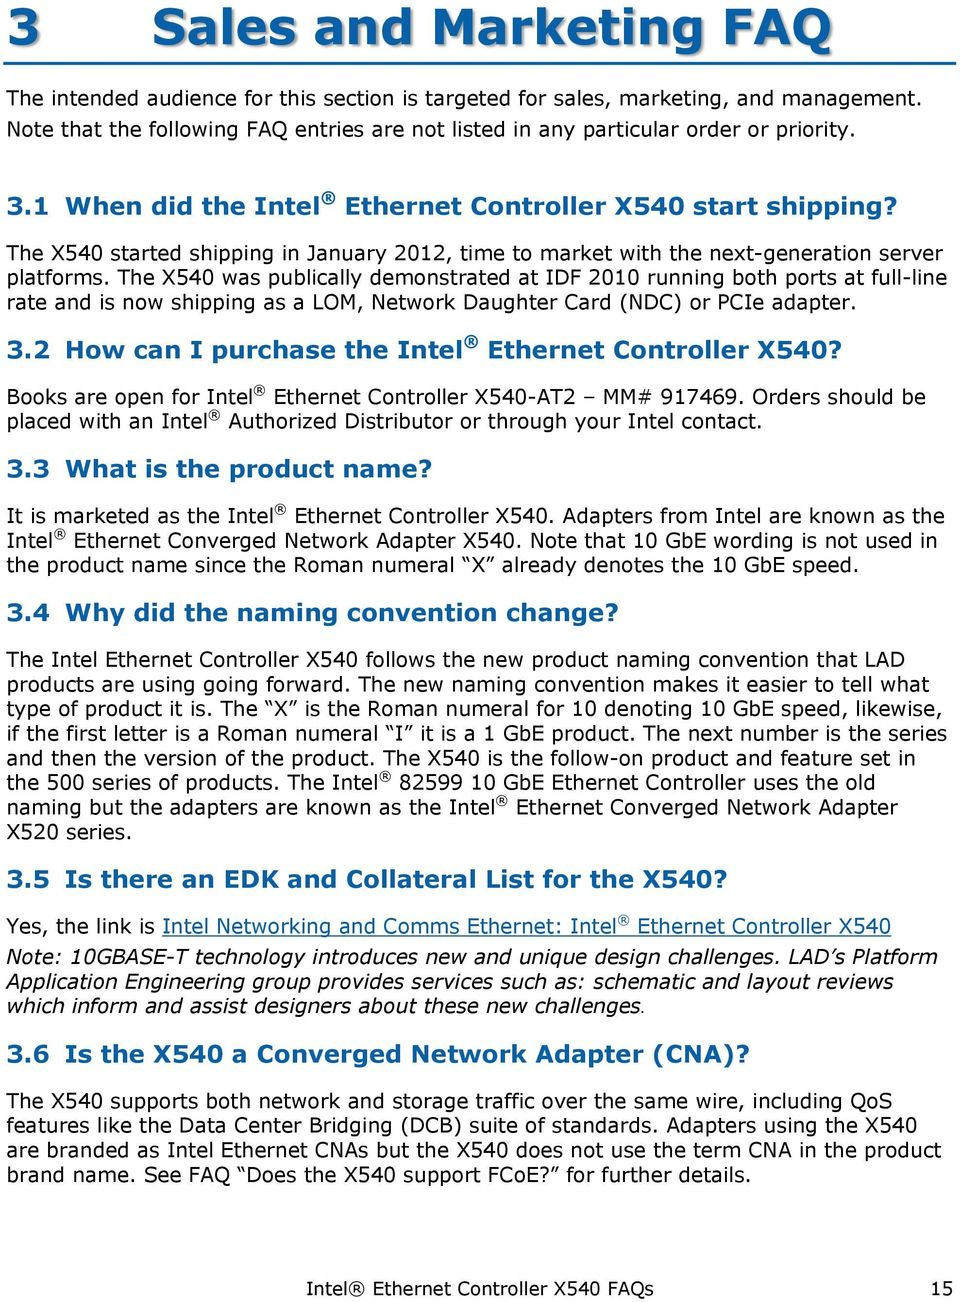 Intel Ethernet Controller X540 Frequently Asked Questions Pdf P3600 Wiring Diagram Besides Stereo Dual The Started Shipping In January 2012 Time To Market With Next Generation